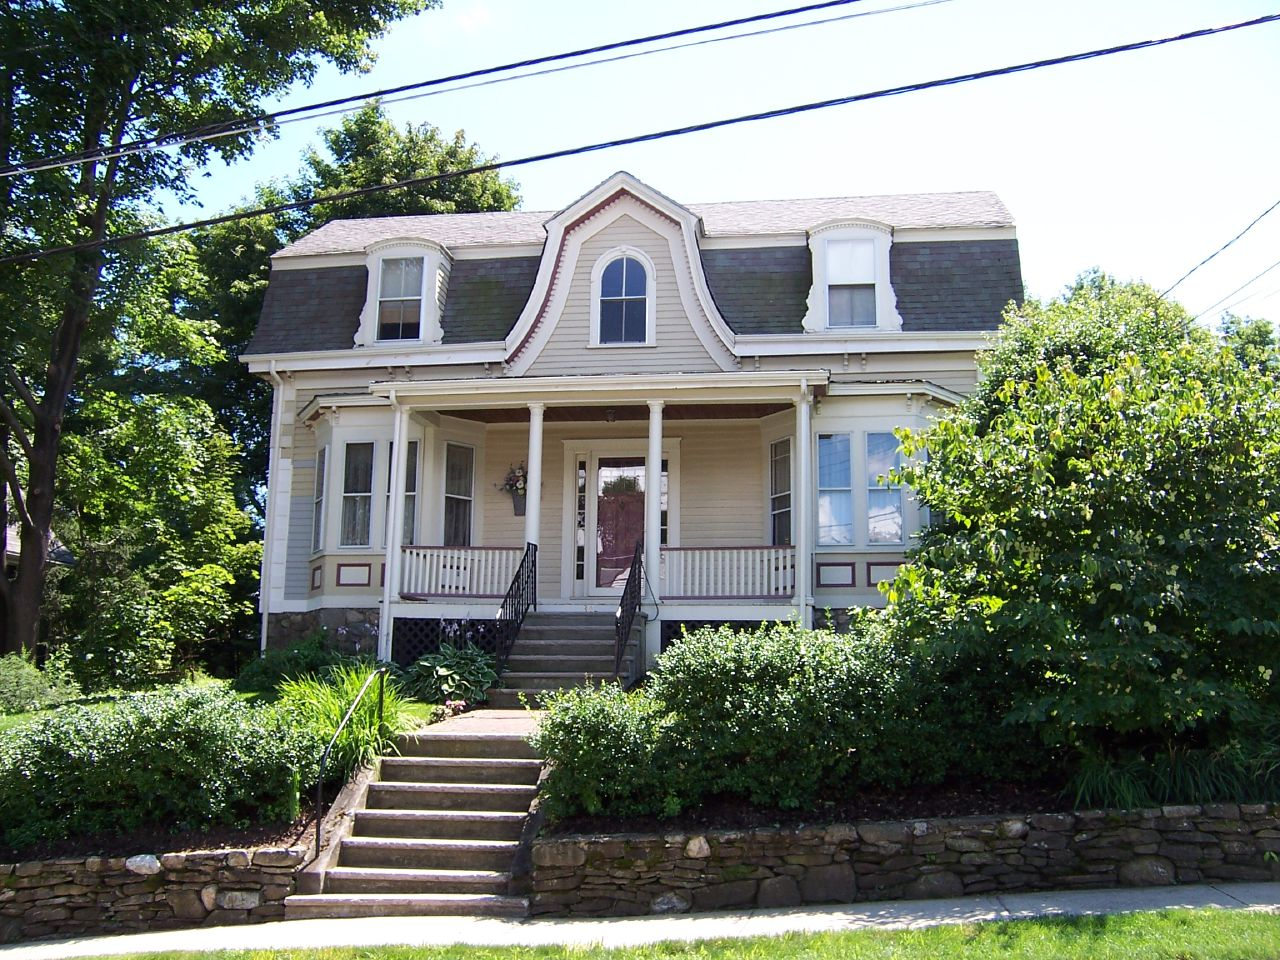 House at 34 lawrence street wakefield mass noble for Wakefield house